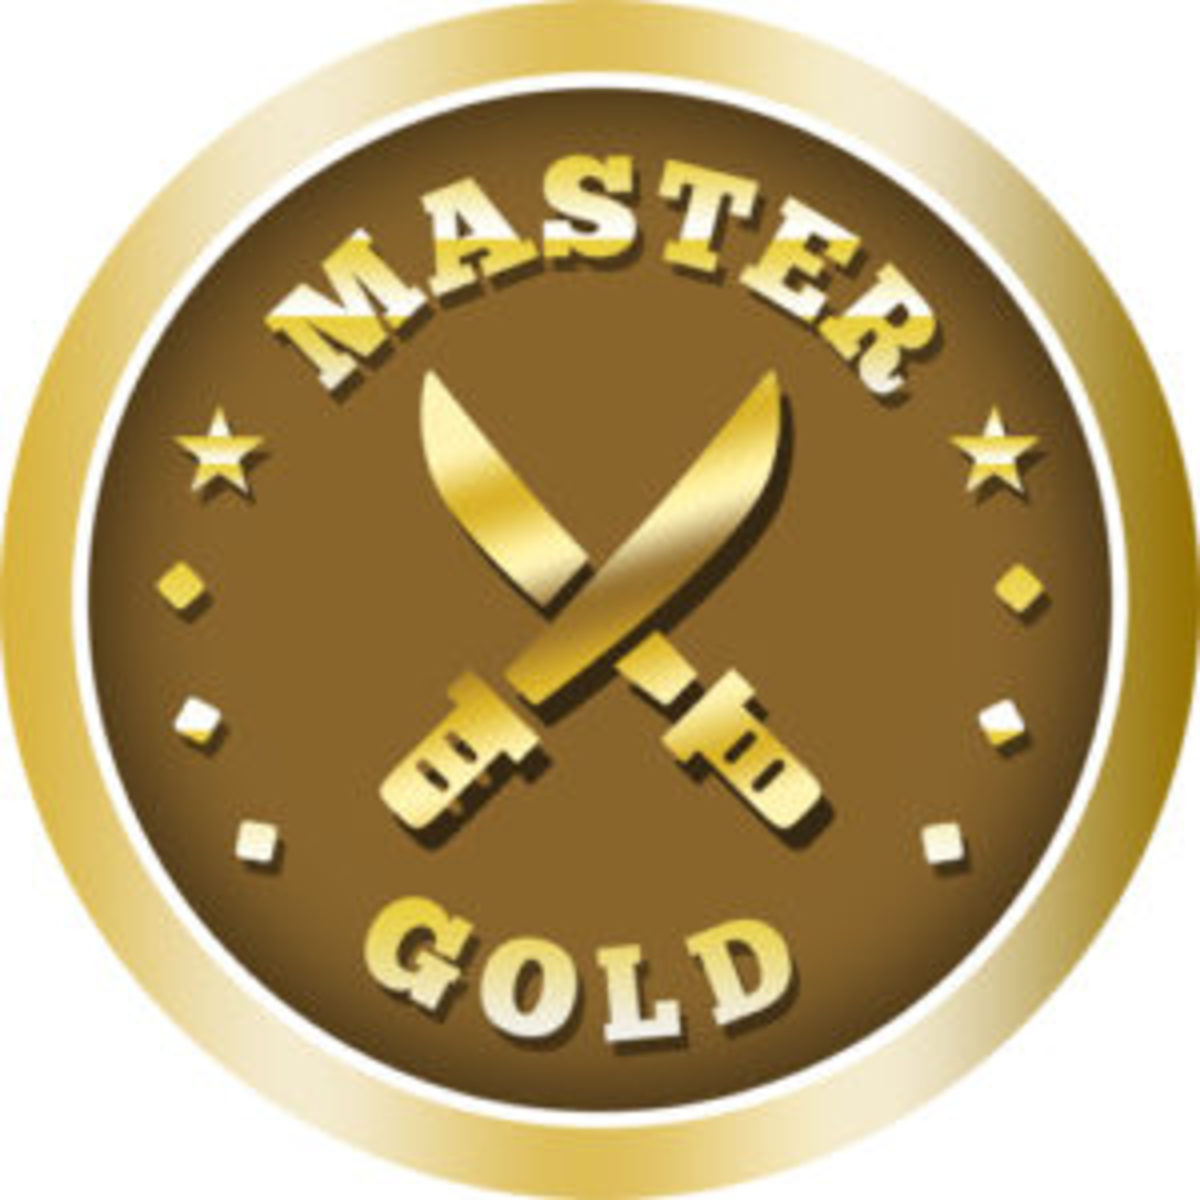 """Adding 300 items to one's inventory earns the Set Registry member another 100 points as well as this impressive """"Master Gold"""" reward medal."""